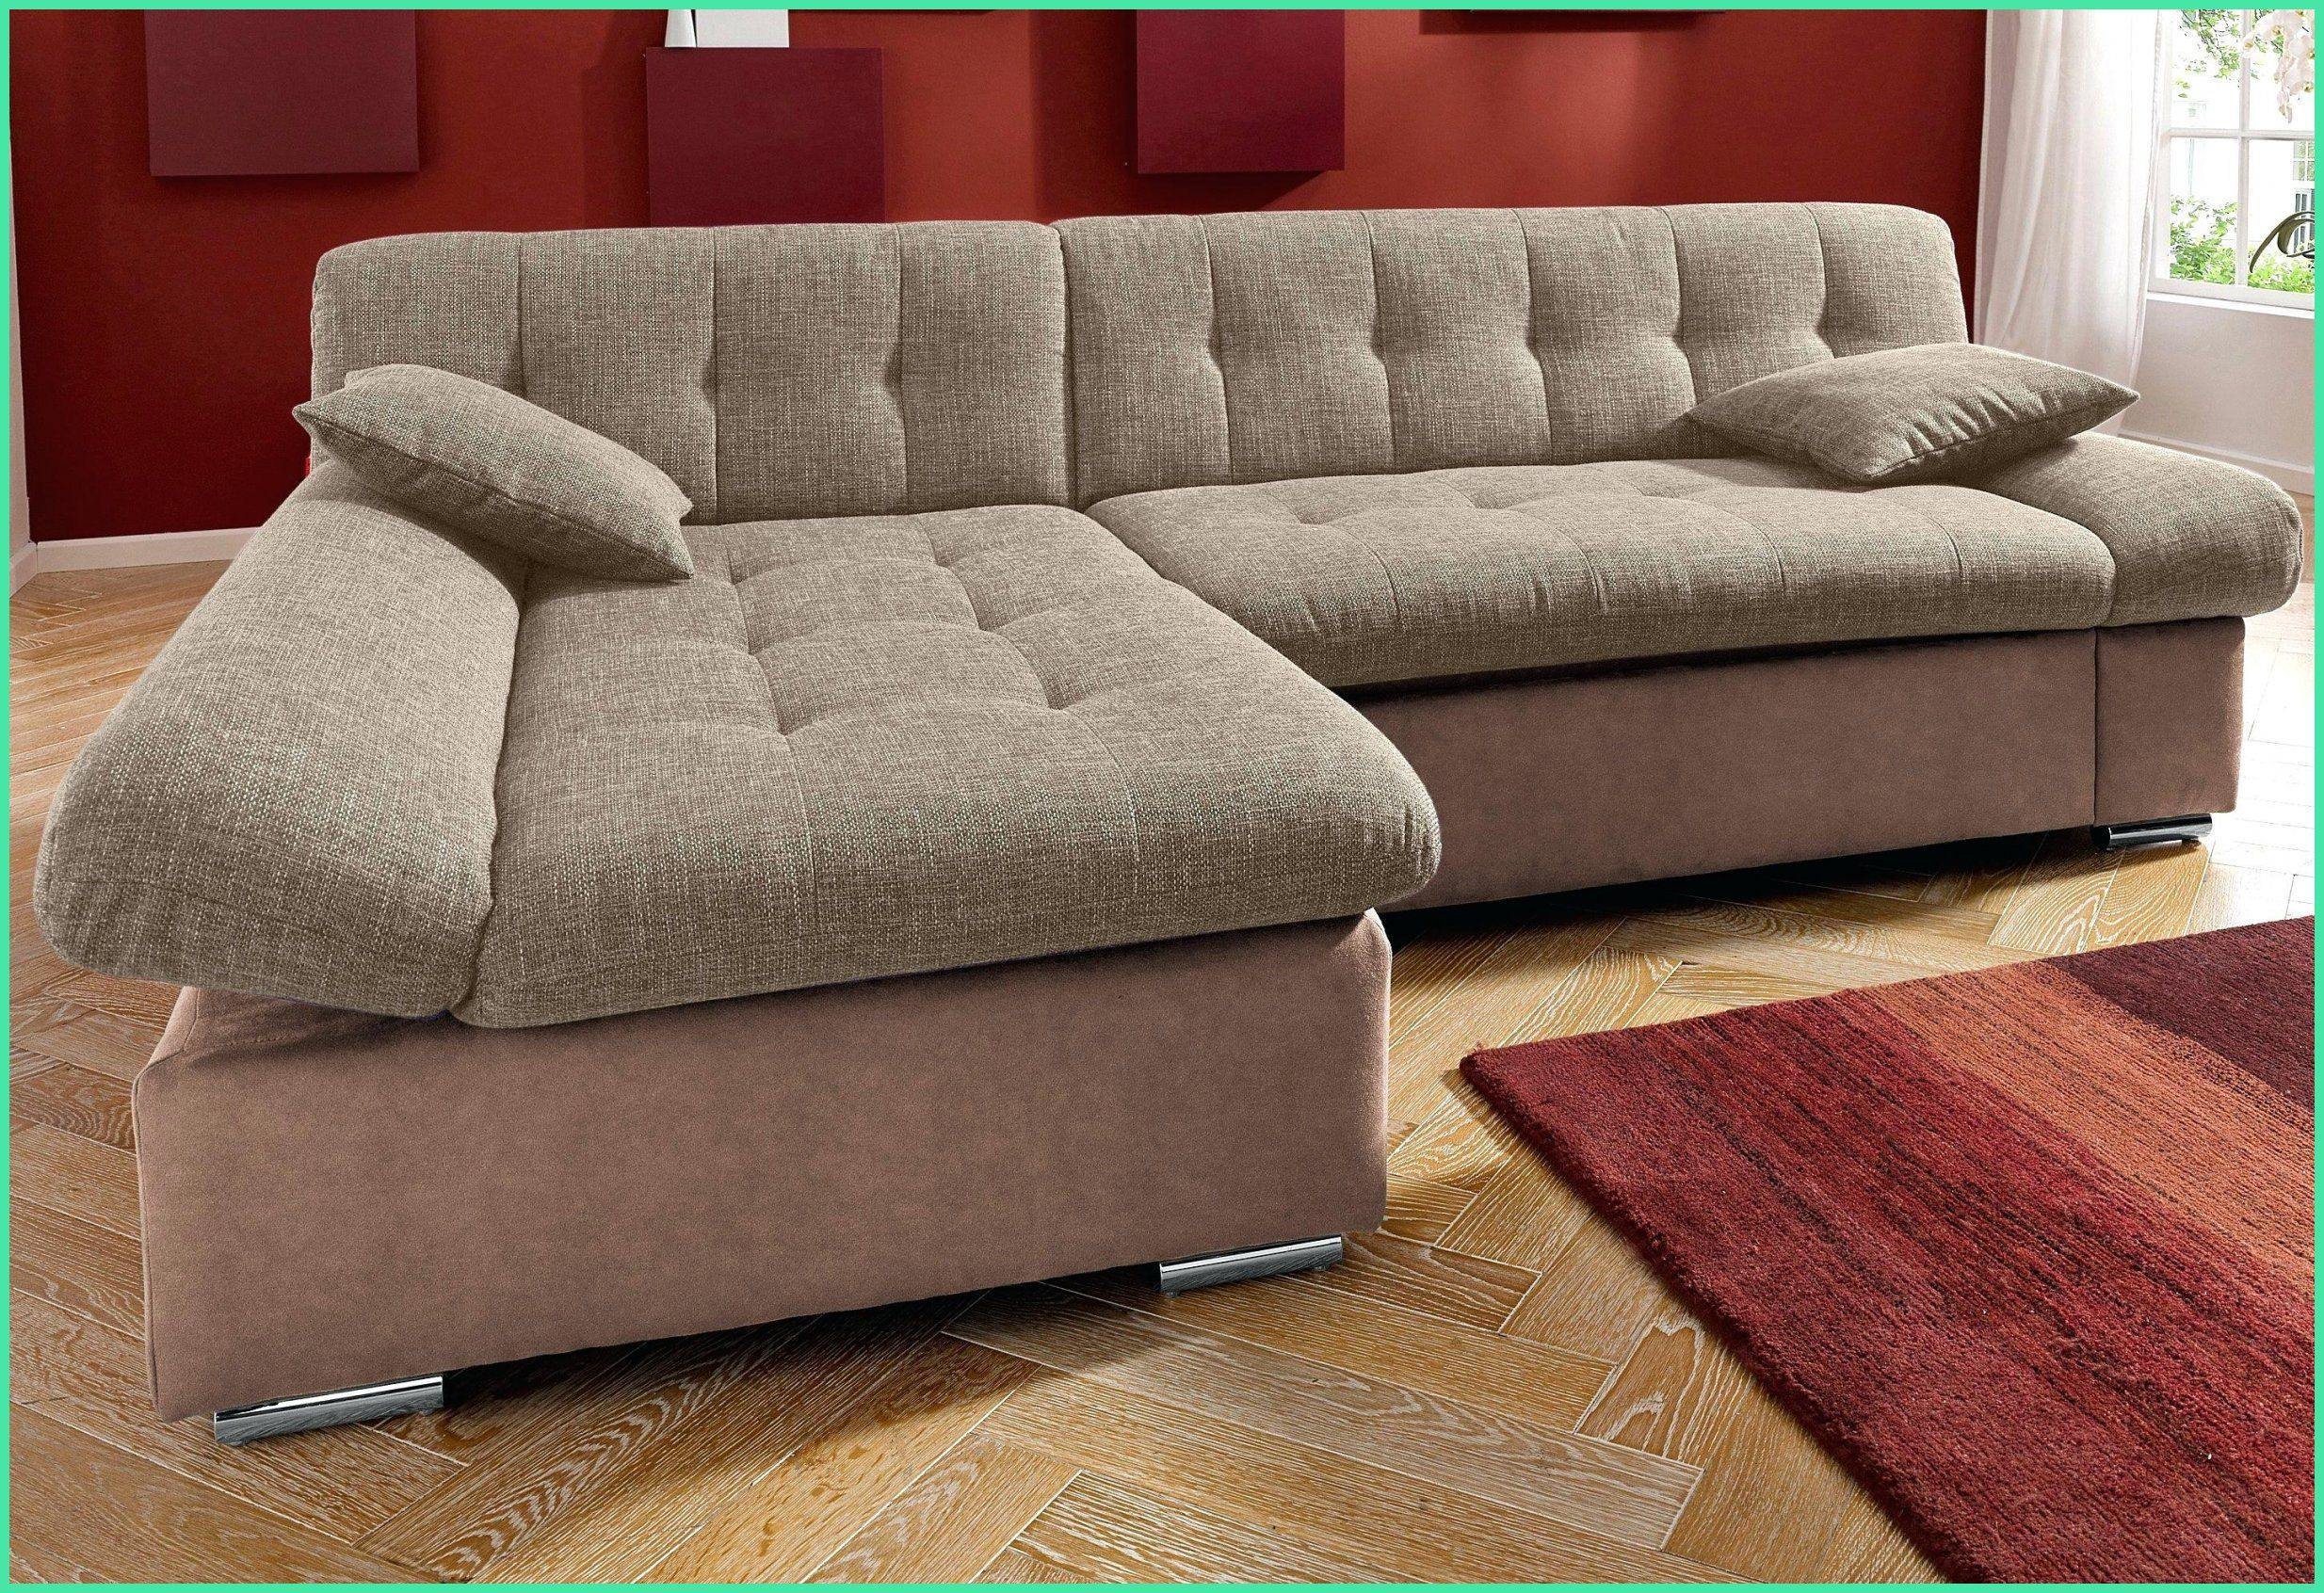 Otto Sofas Mit Bettfunktion Sofas Big Sofa Otto Sofas Mit Von Otto Sofas Mit Bettfunktion Photo Bigsofabauen Bigsofaboxspring Bigsof Big Sofas Sofa Couch